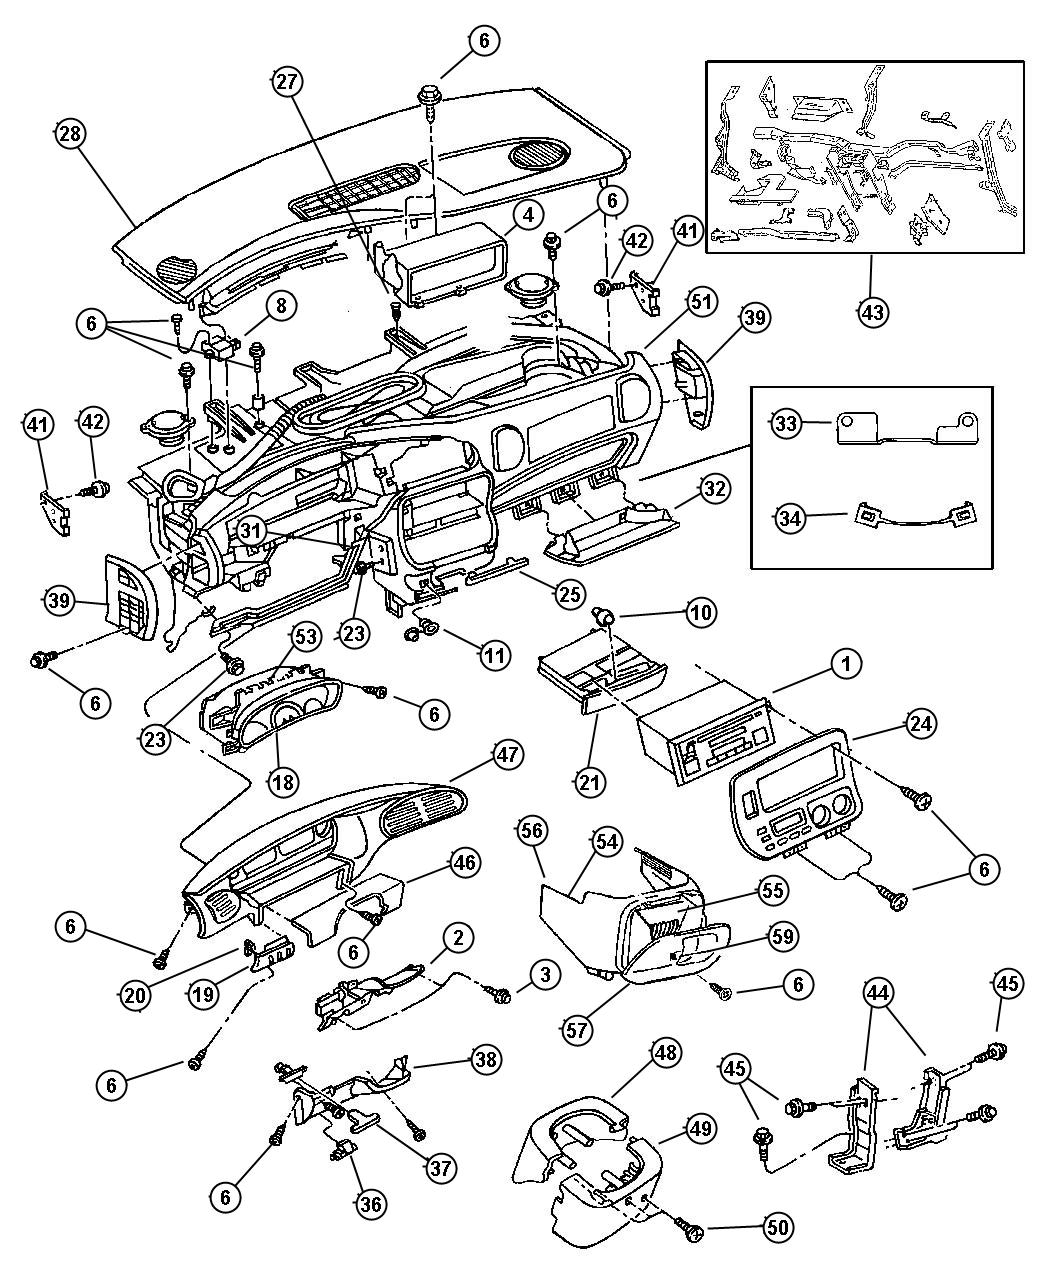 [WRG-6760] 97 Sebring Engine Diagram